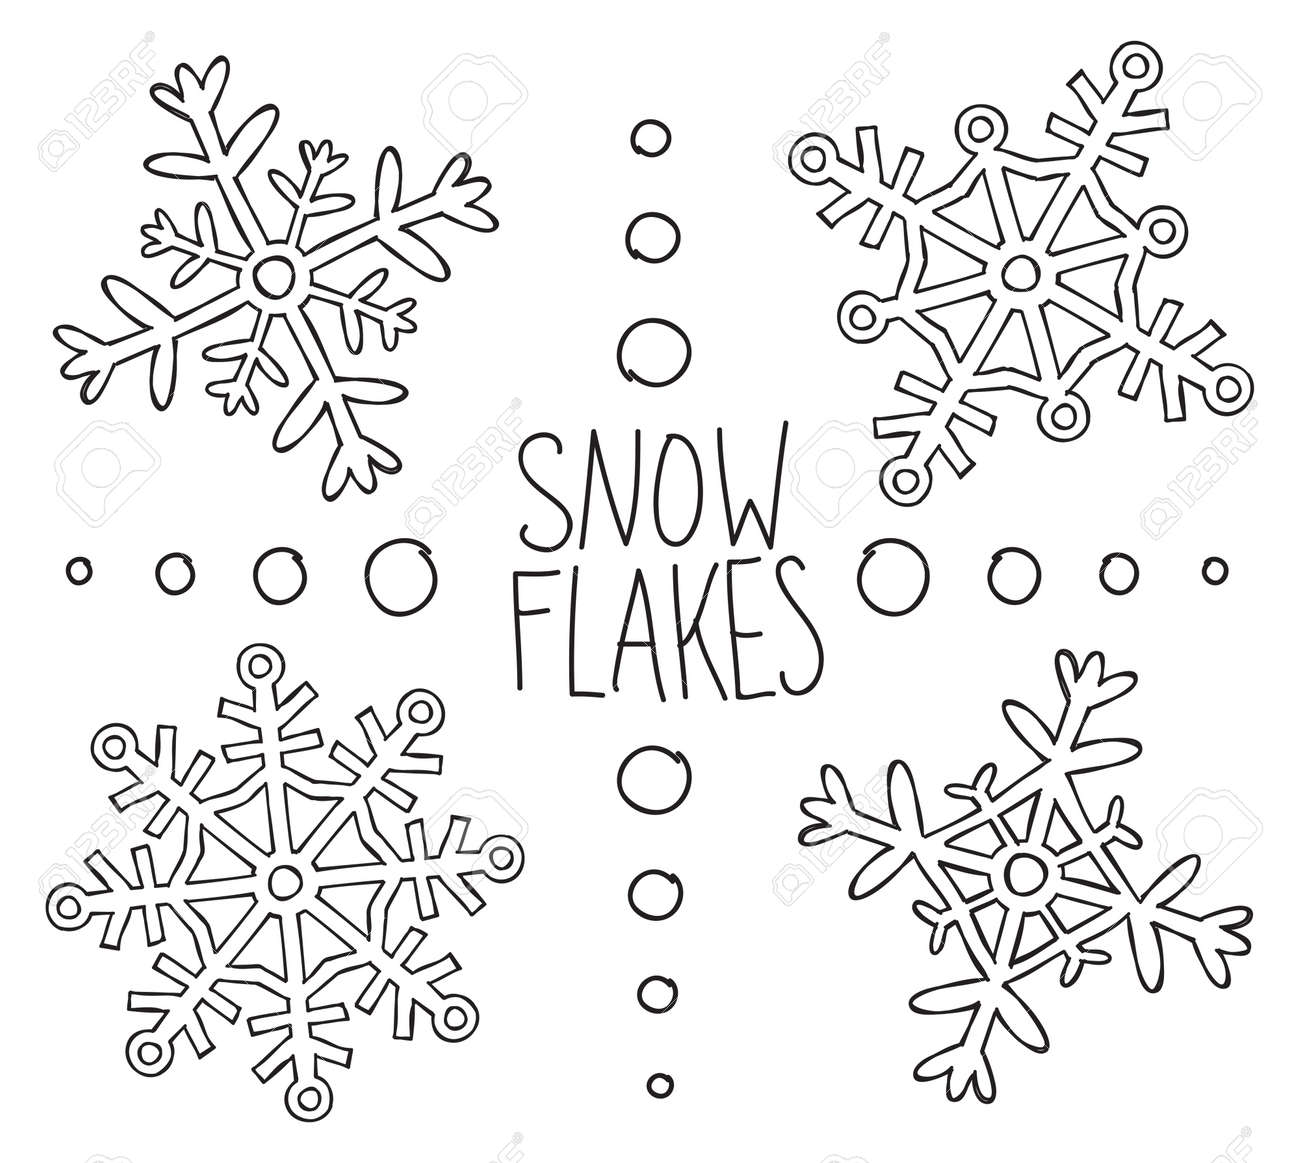 Snowflakes Doodle Stock Vector - Image: 44056451